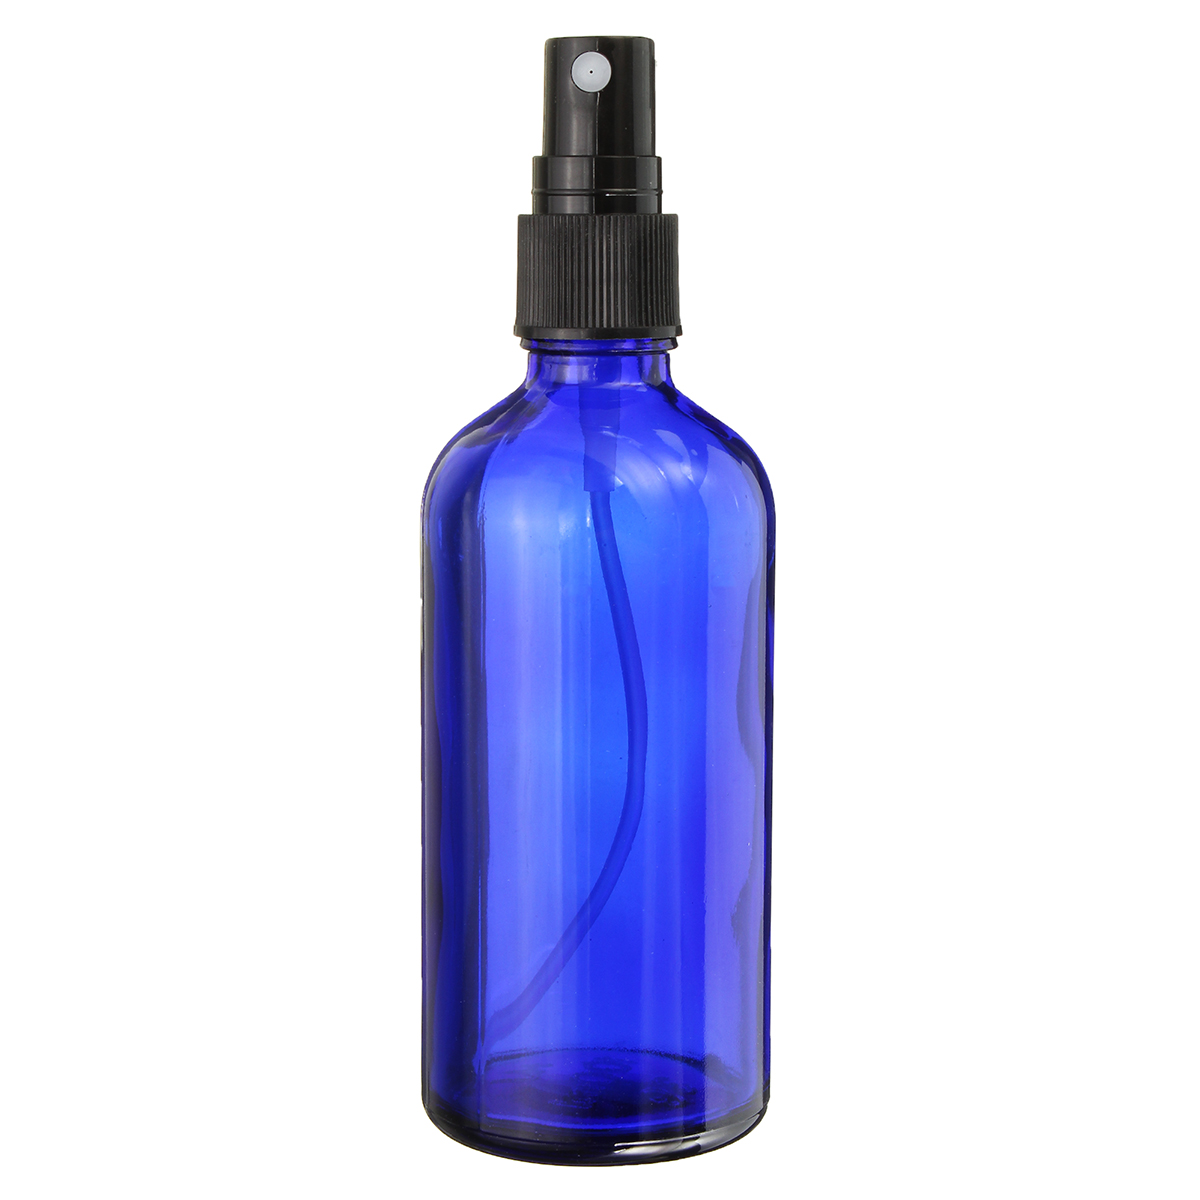 1pc/2pcs <font><b>100ml</b></font> Blue <font><b>Spray</b></font> <font><b>Glass</b></font> <font><b>Bottle</b></font> Essential Oil Liquid Sprayer Travel Empty Dispenser Fine Mist Atomizer Cosmetic Container image